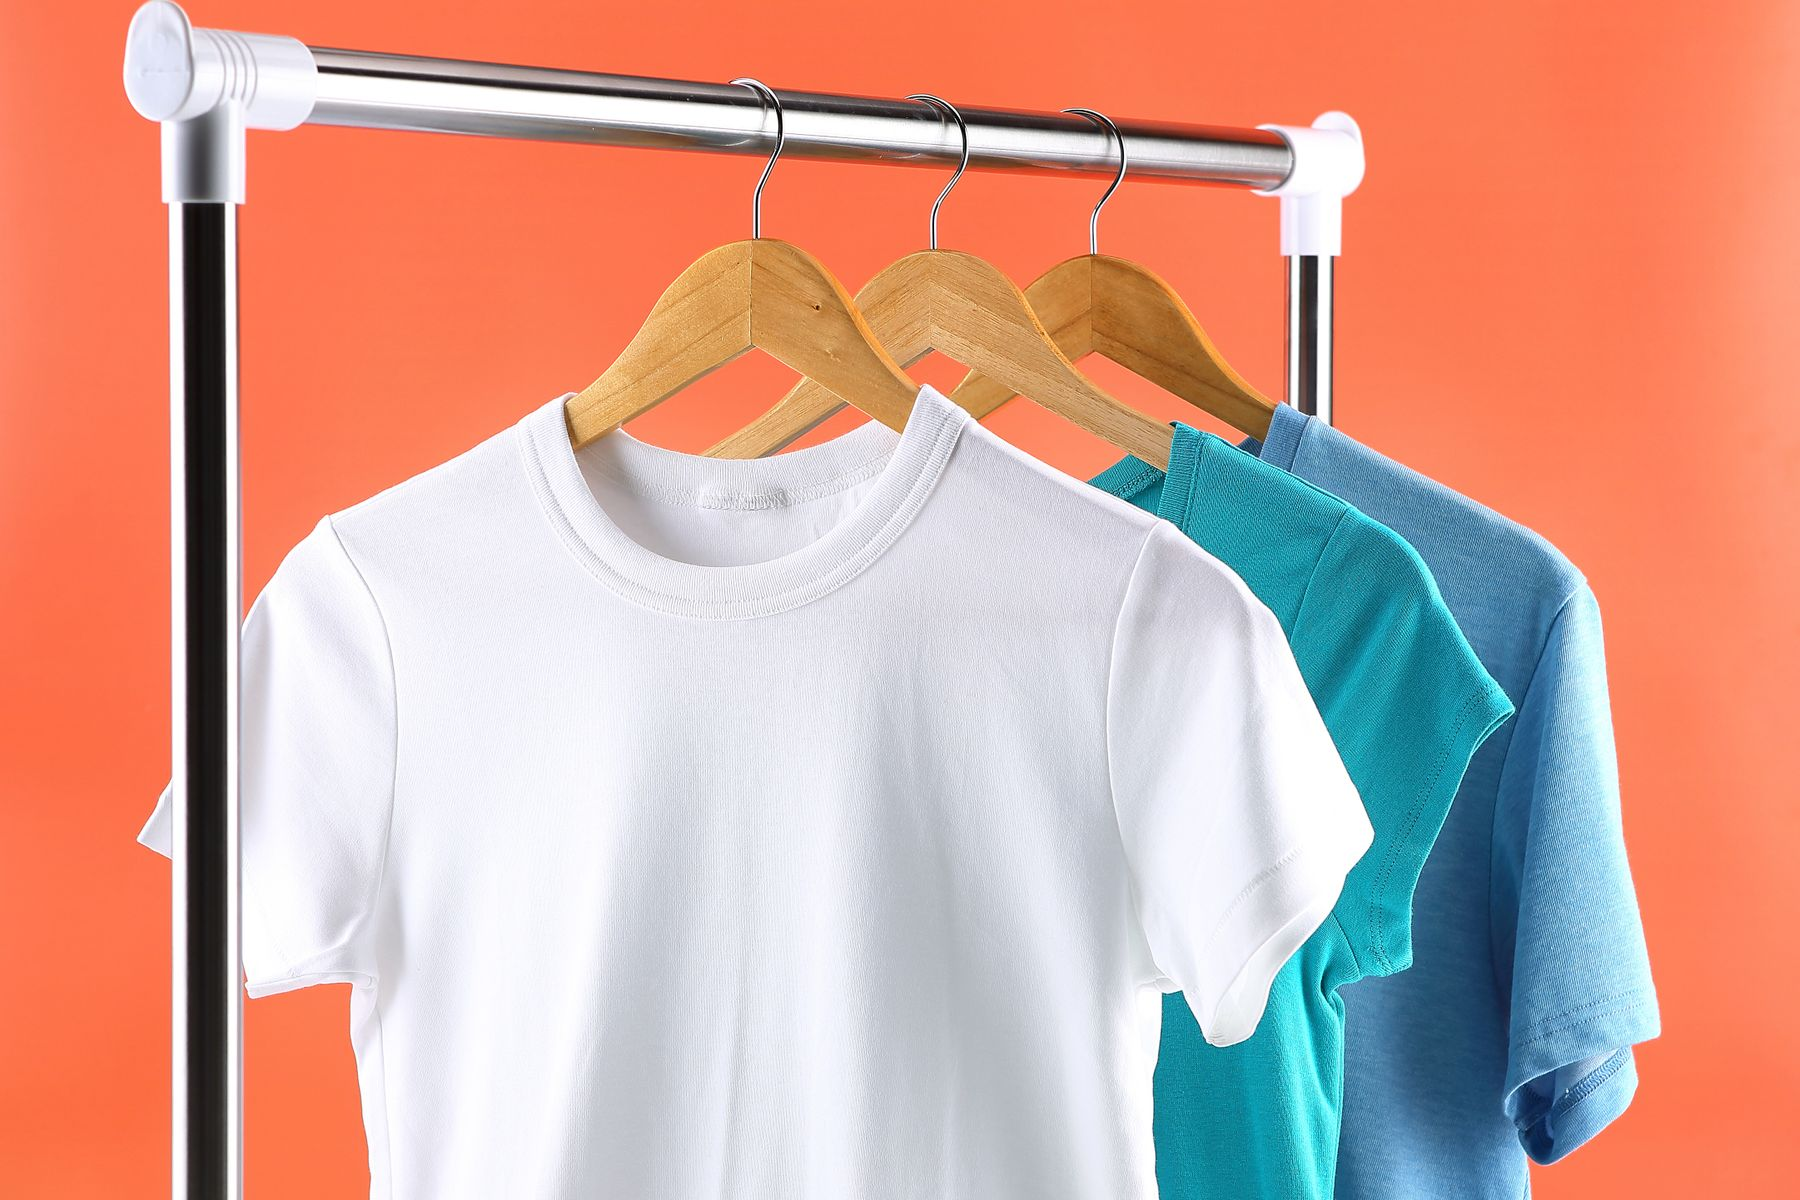 Three cotton t-shirts hanging up on a clothes rail with an orange background